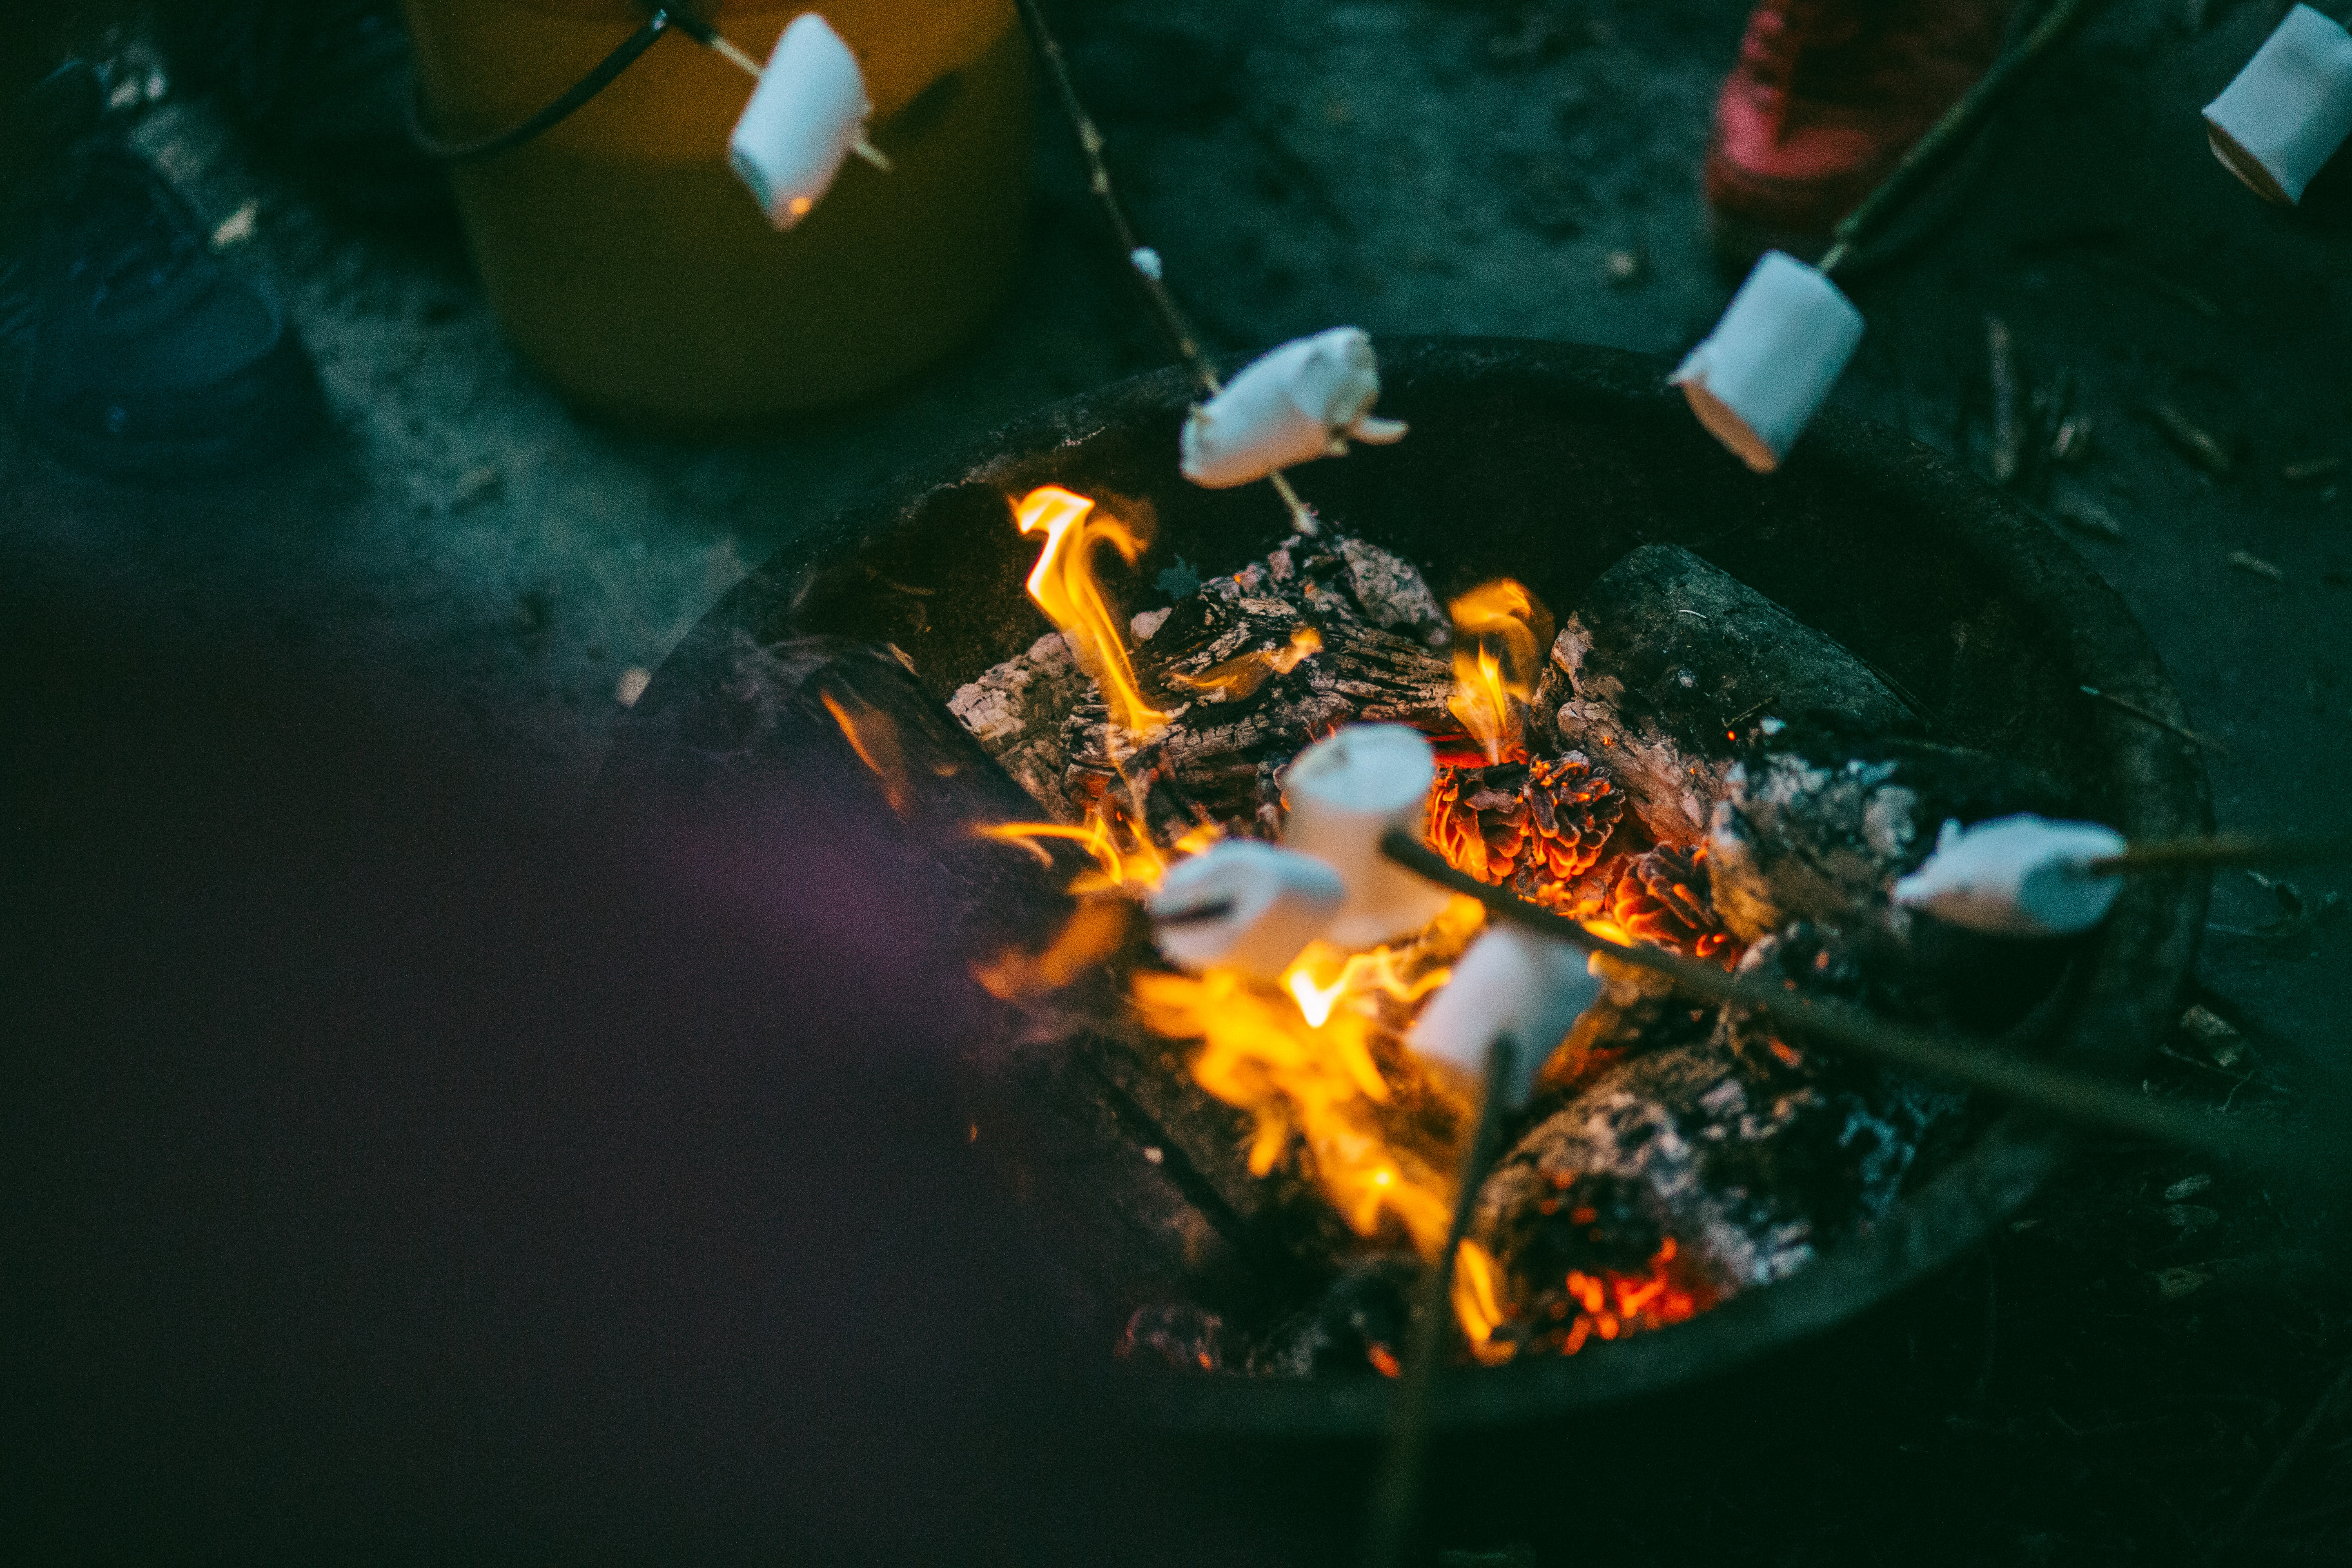 summer camp europe campfire smores hiking marshmallows on a stick fire fireplace friends company staycation holiday ideas alternative unique nature camping road trip couple dog car adventure couple experience localbini biniblog travel blog scenery nature travel traveller